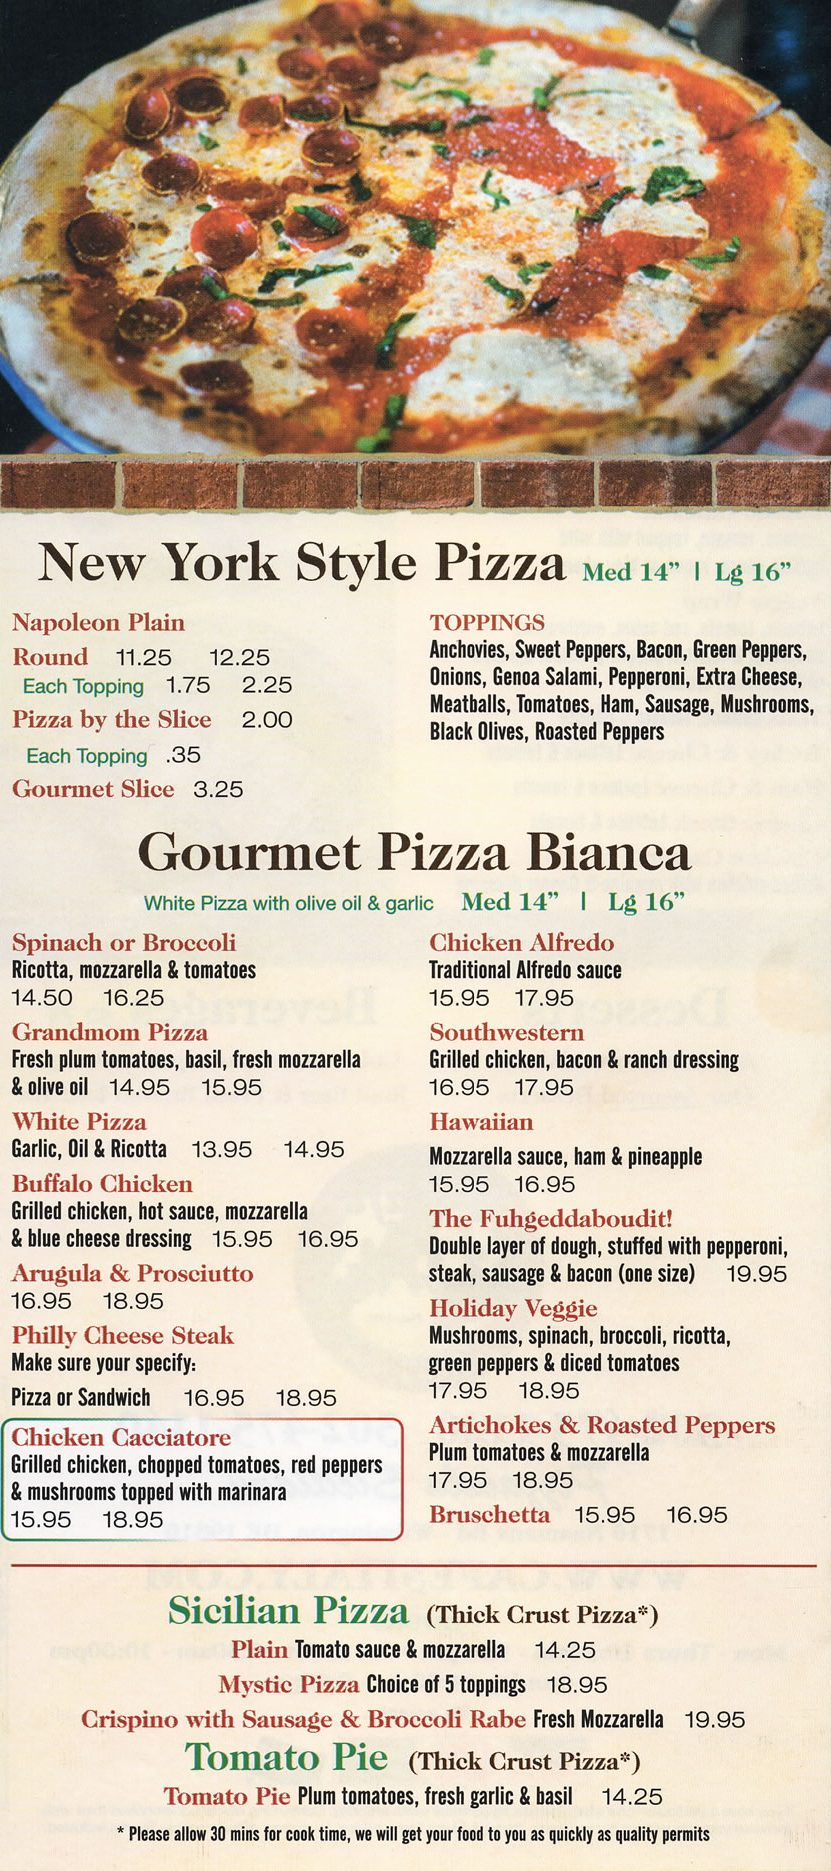 Take Out Pizza Menu CafenSitaly